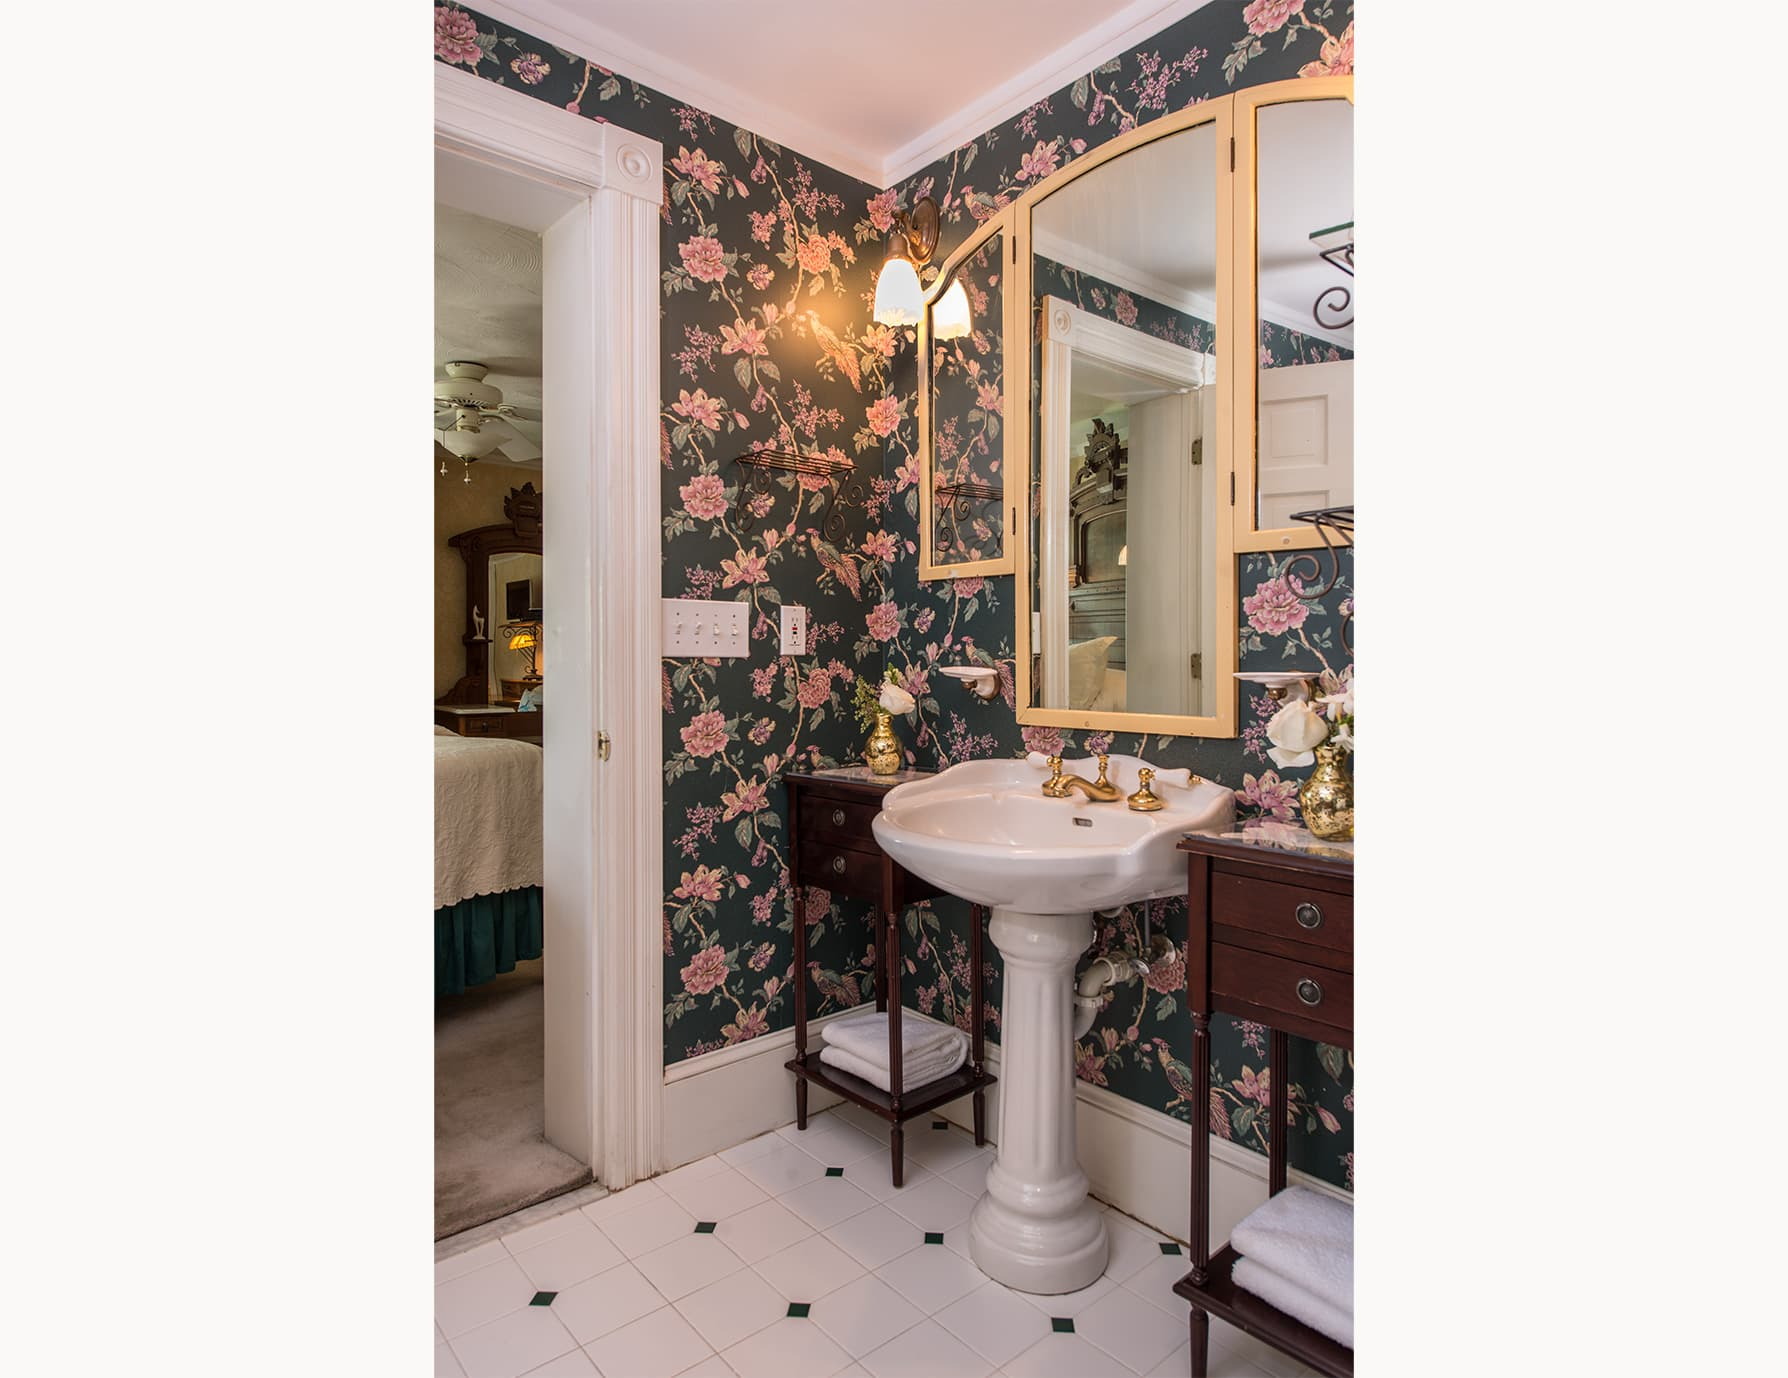 Bathroom with Floral Wallpaper at Our Bed and Breakfast on Roanoke Island